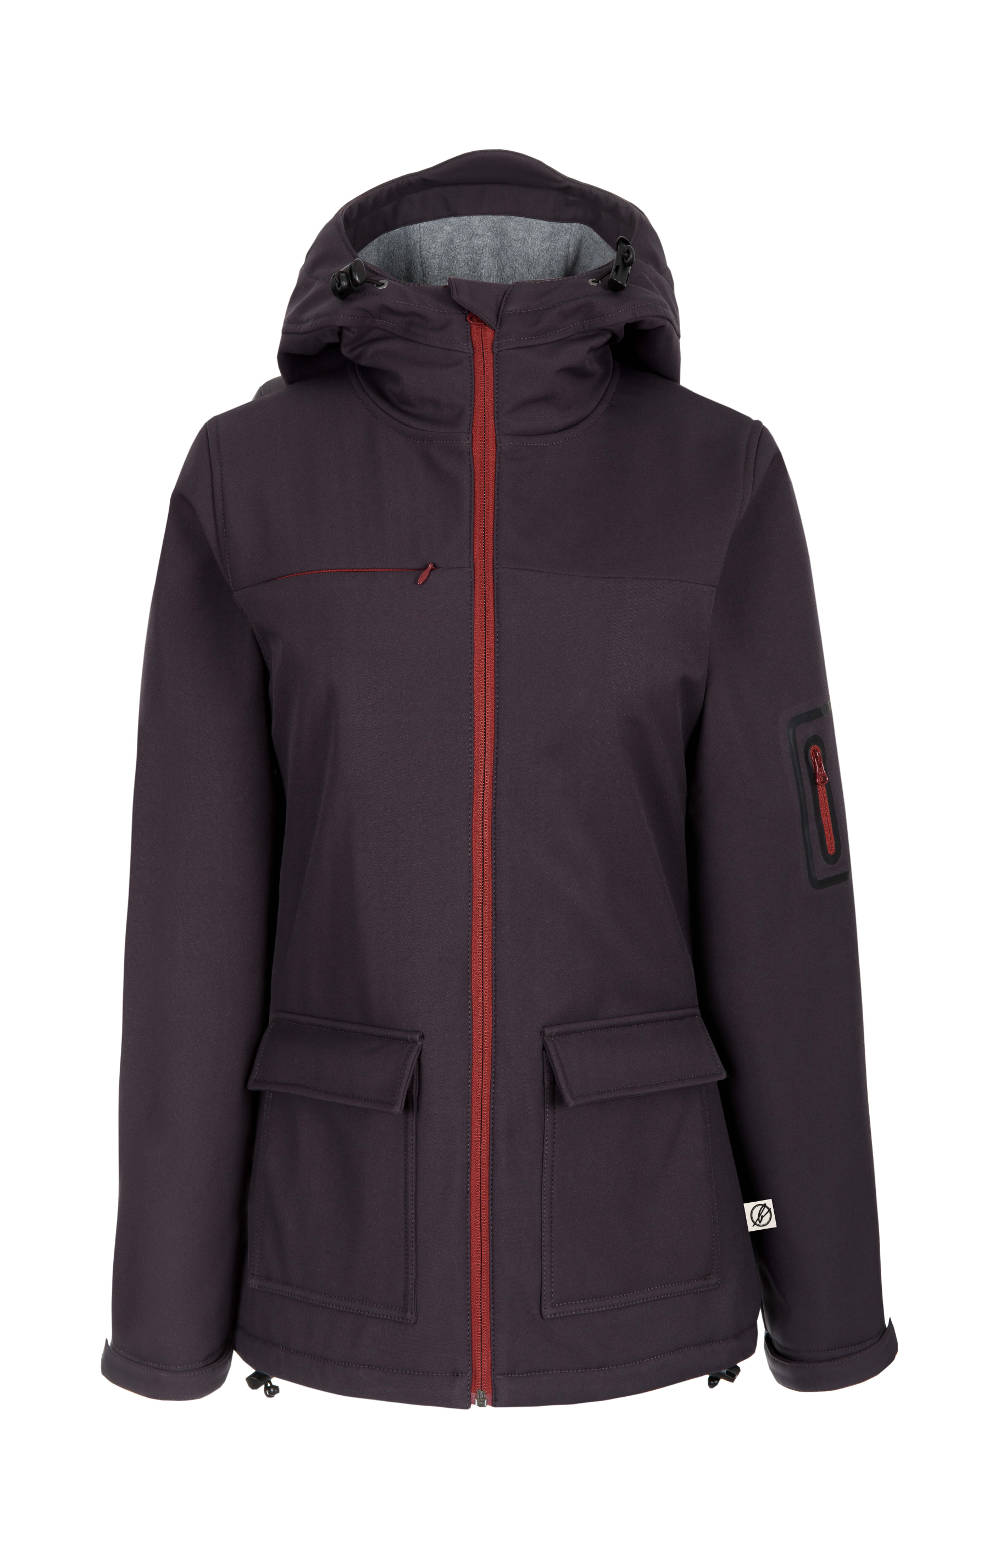 Bleed Sympatex Active Jacke Damen grau